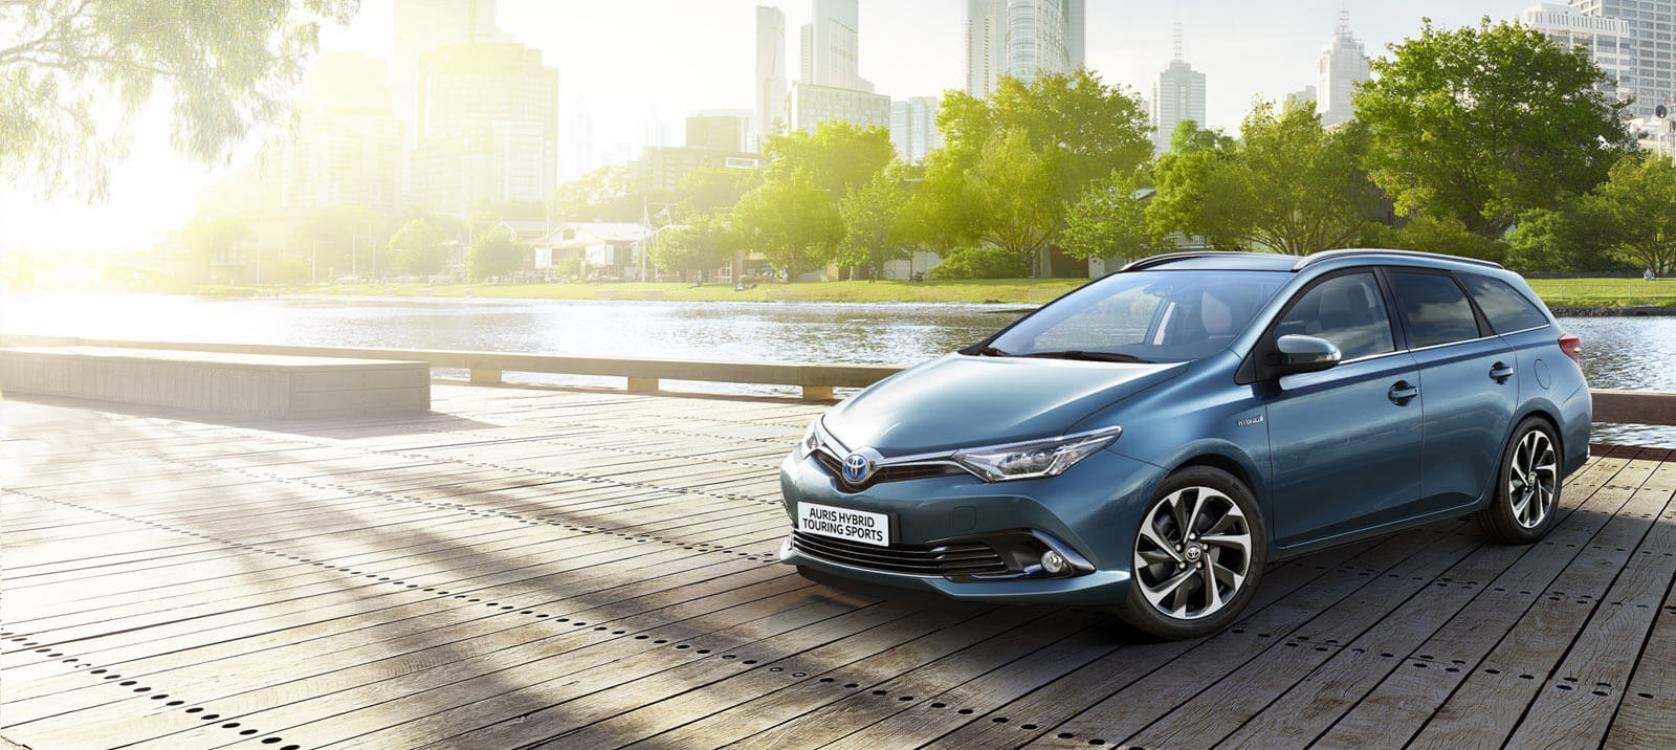 auris hybrid touring sports models features howards toyota. Black Bedroom Furniture Sets. Home Design Ideas